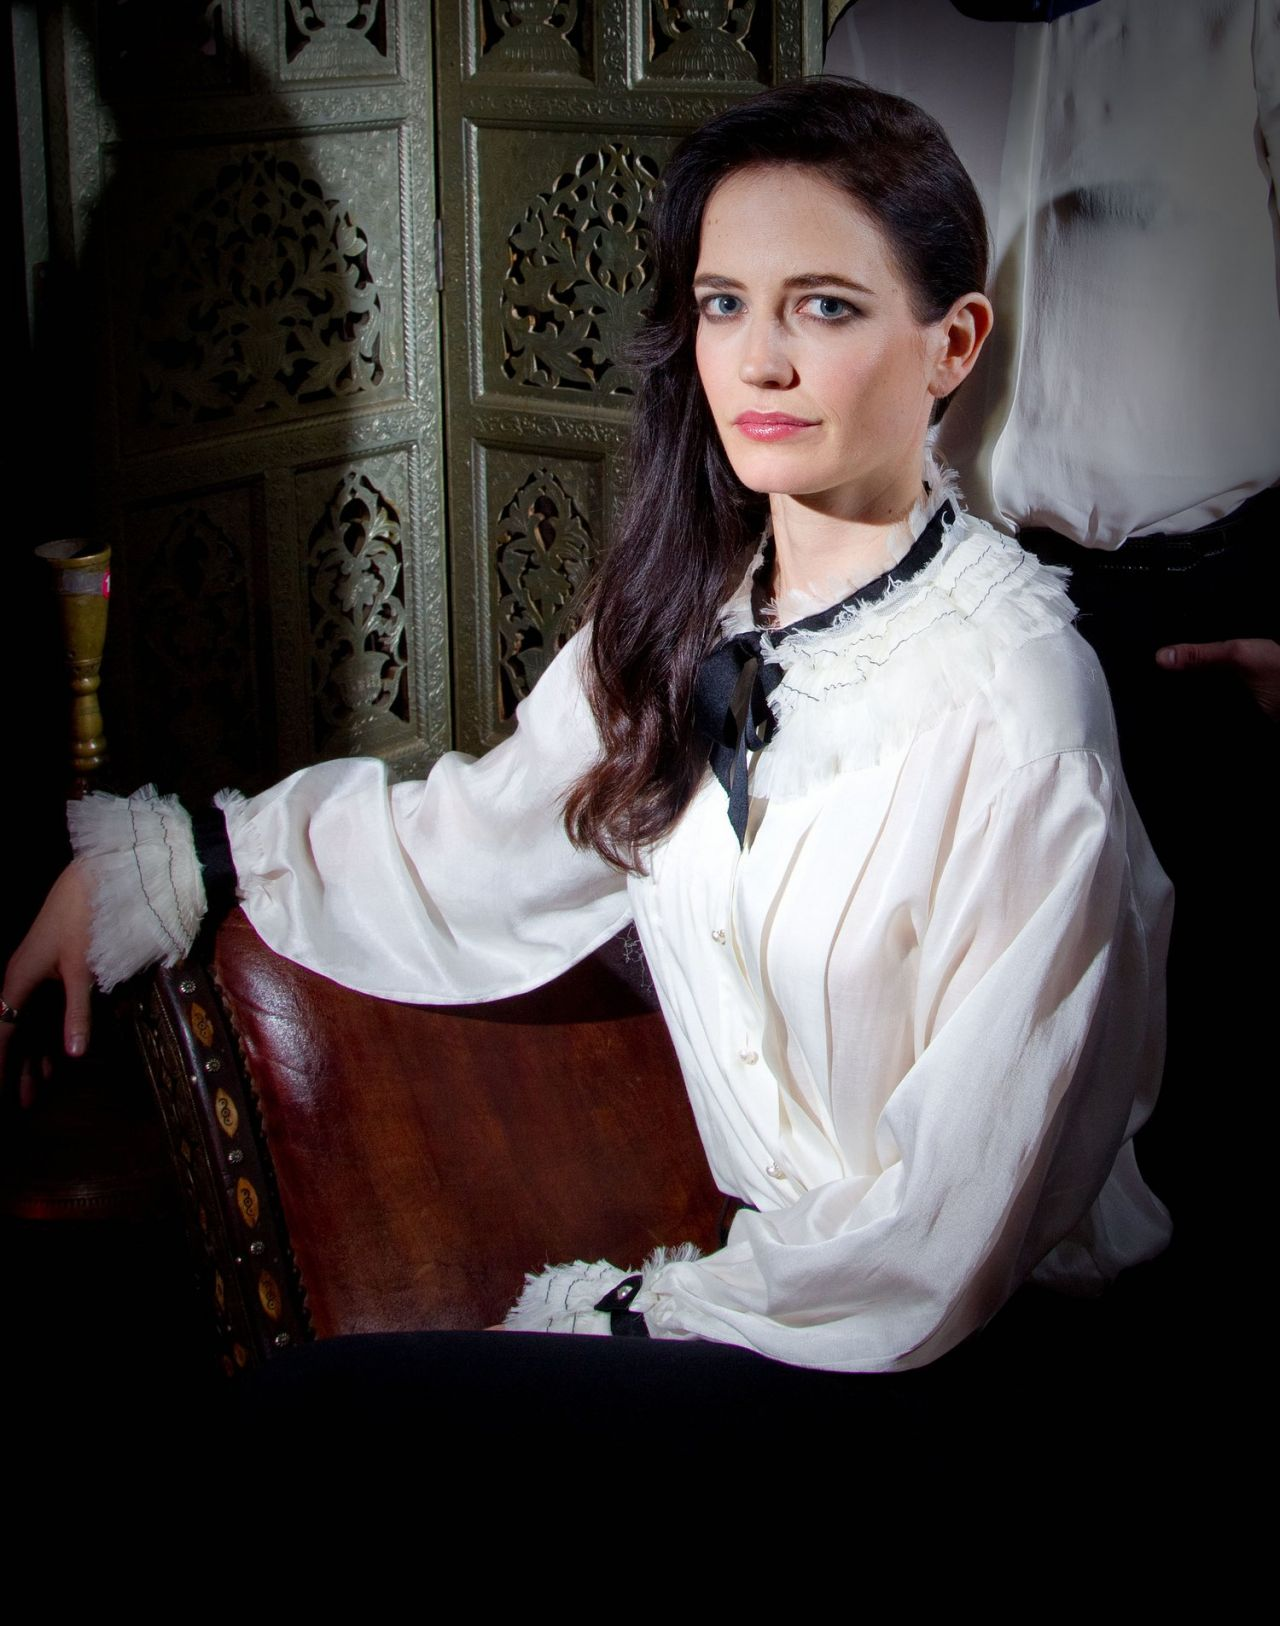 Eva Green - Photoshoot for New York Daily News (2014)